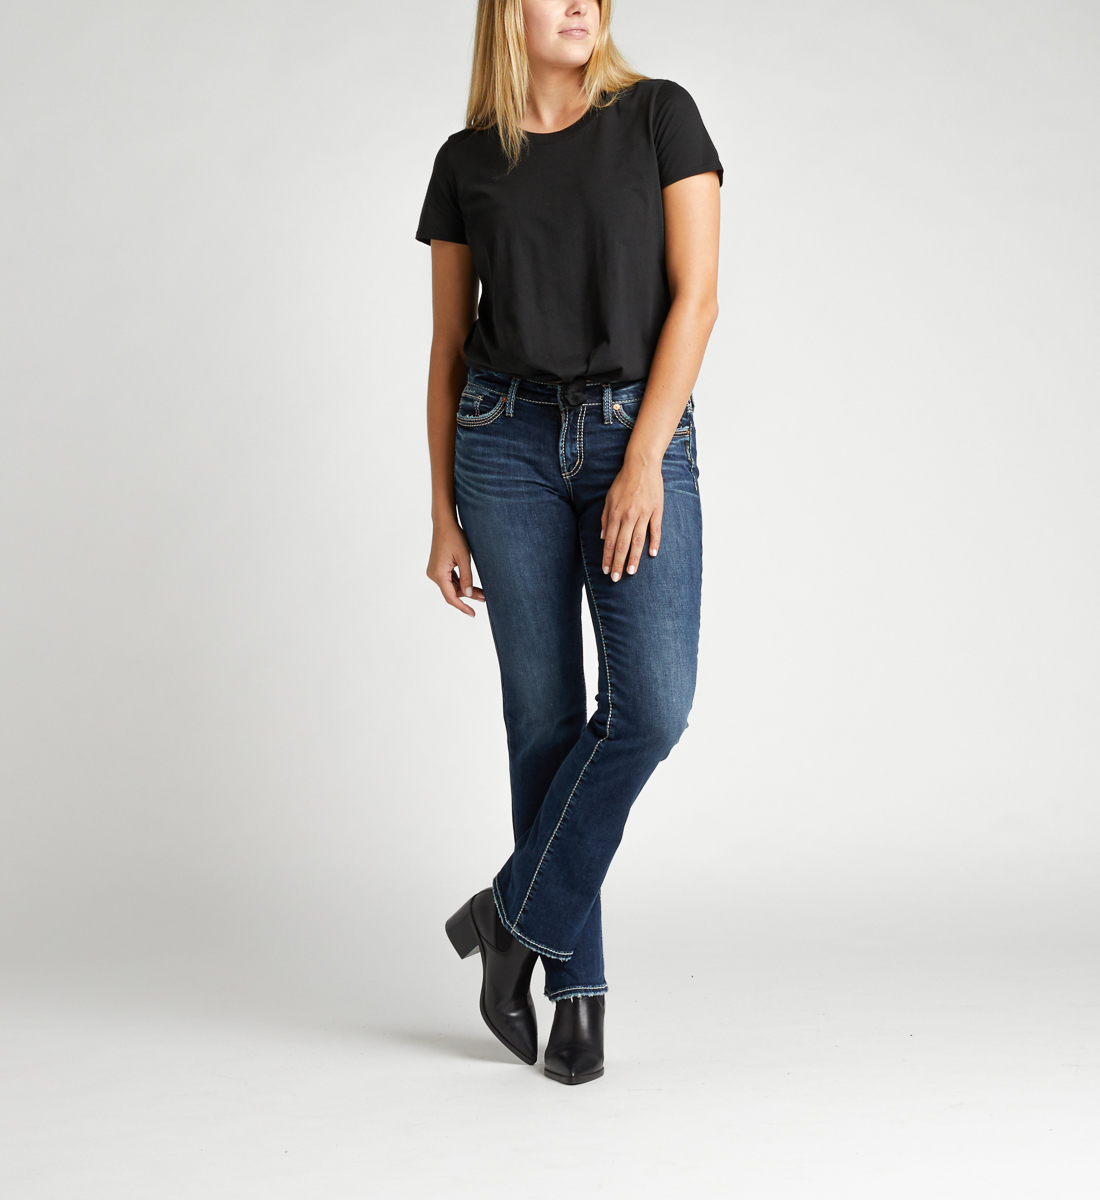 Silver Jeans Suki Mid Rise Slim Bootcut Jeans